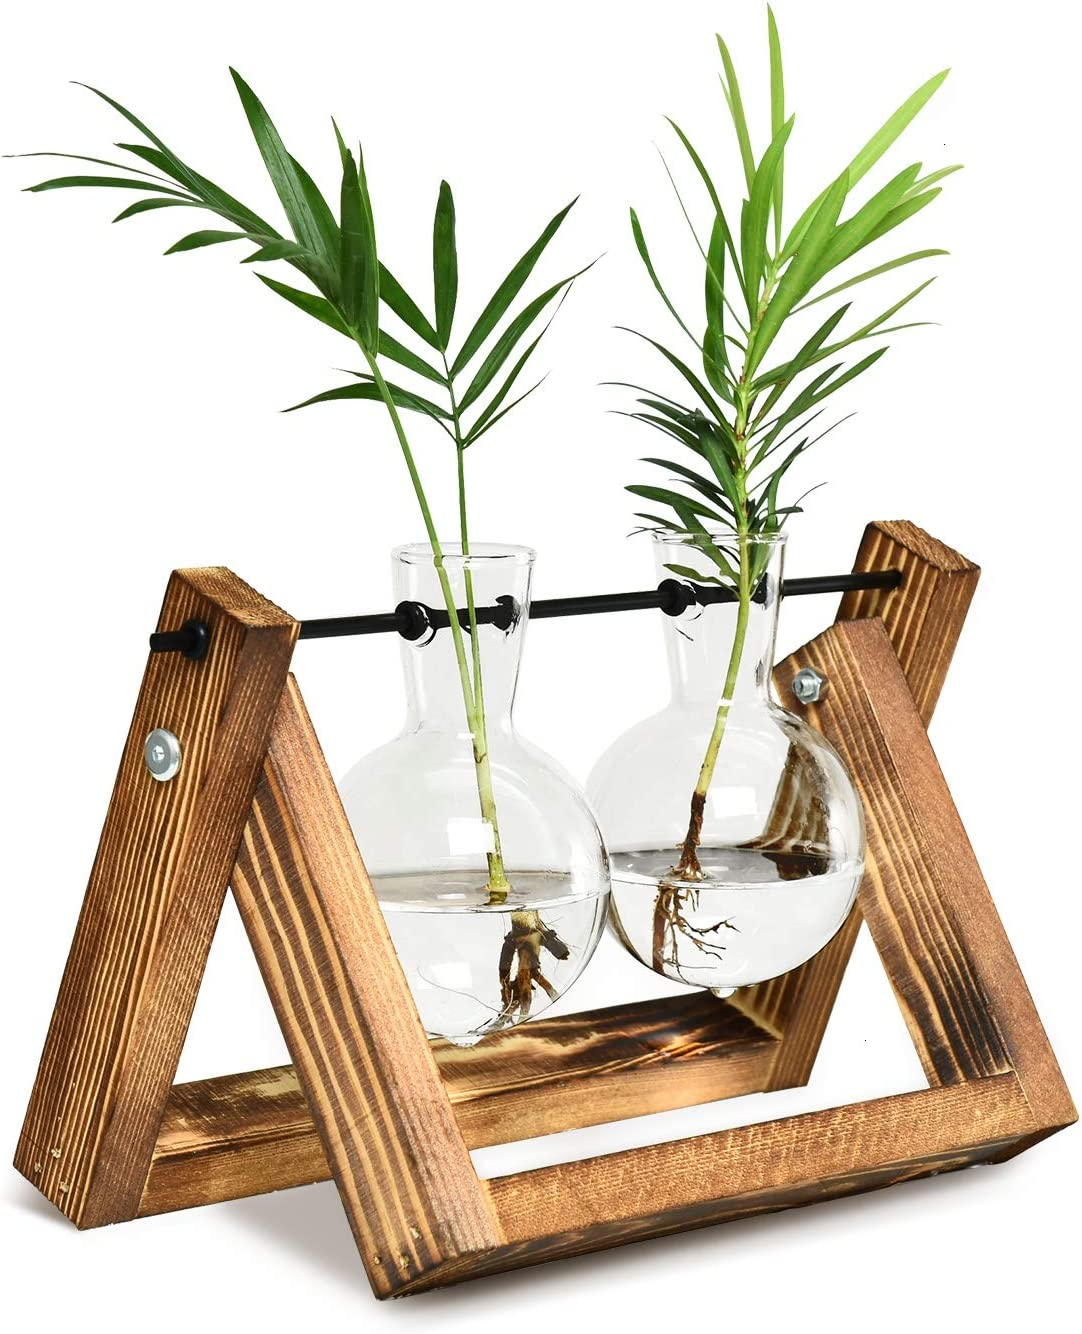 Vumdua Plant Propagation Stations, Desktop Glass Planter Bulb Vase with Solid Wooden Stand and Metal Swivel Holder for Hydroponics Plants Home Garden Decor